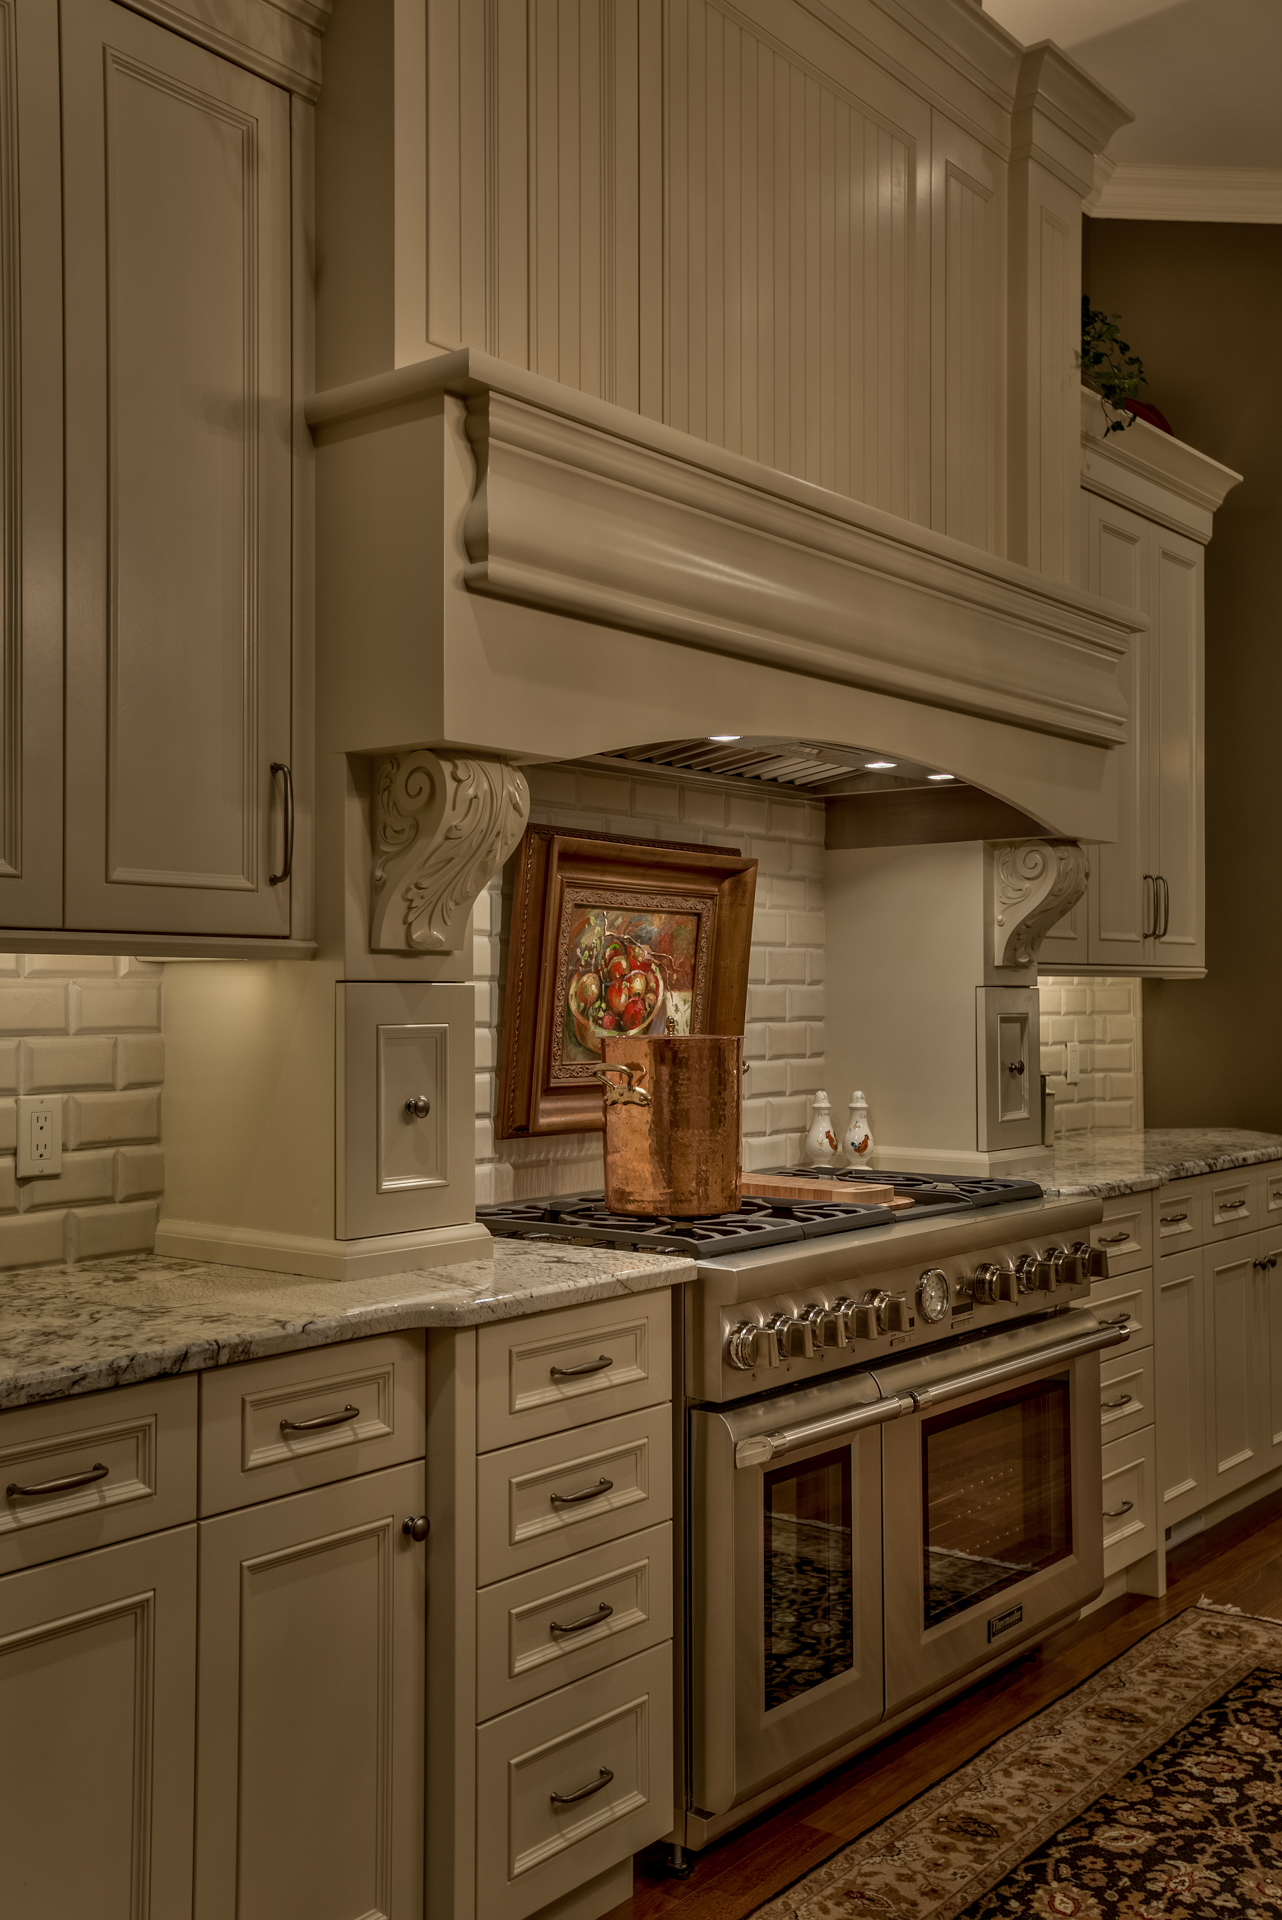 Painted Cabinets w/ Detailed Molding